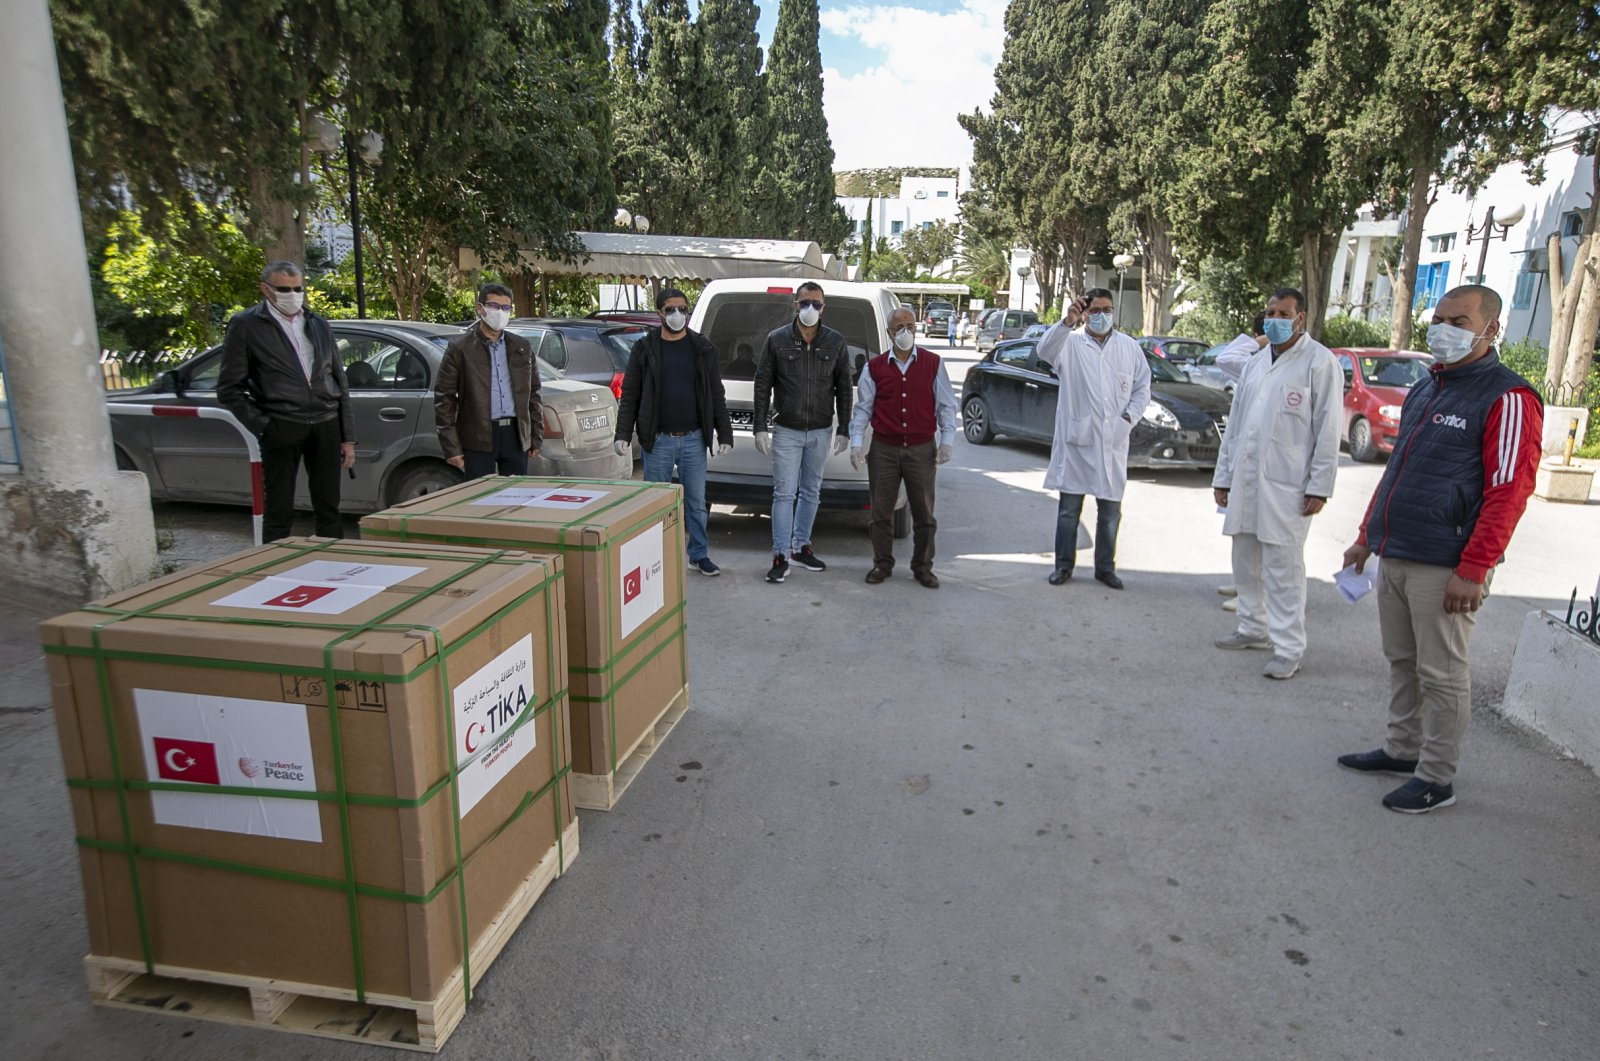 Turkish Cooperation and Coordination Agency (TİKA) has delivered aid packages to Tunisia in order to assist in the effort to stem the novel coronavirus pandemic, Friday, April 10, 2020. (AA Photo)